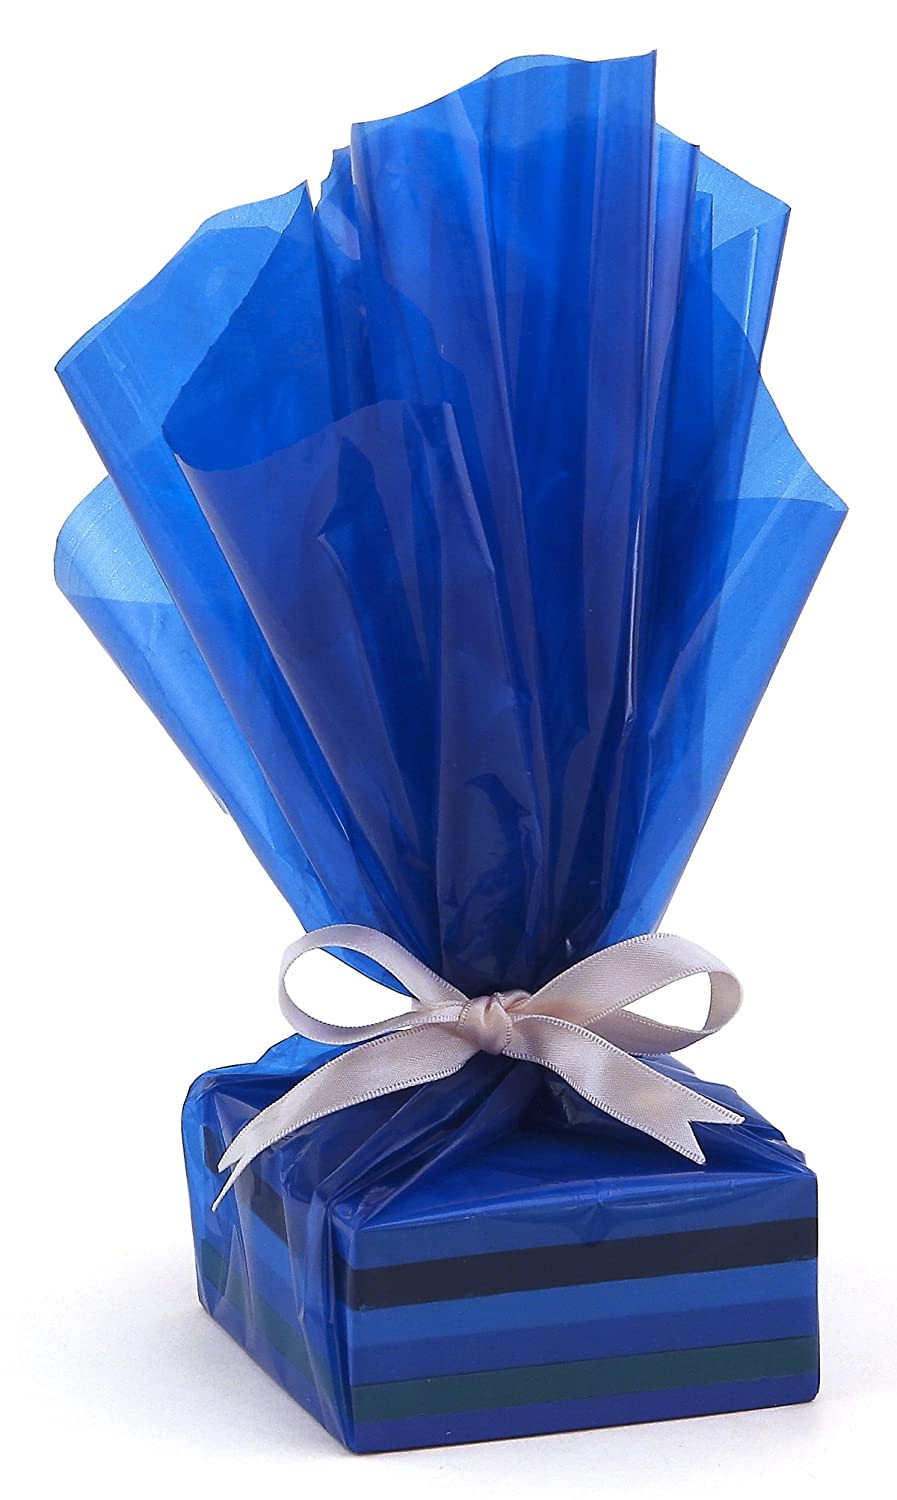 x 100 ft Cellophane Gift Wrap Roll Inc Clear 40 in Hygloss Products inches x 100-feet